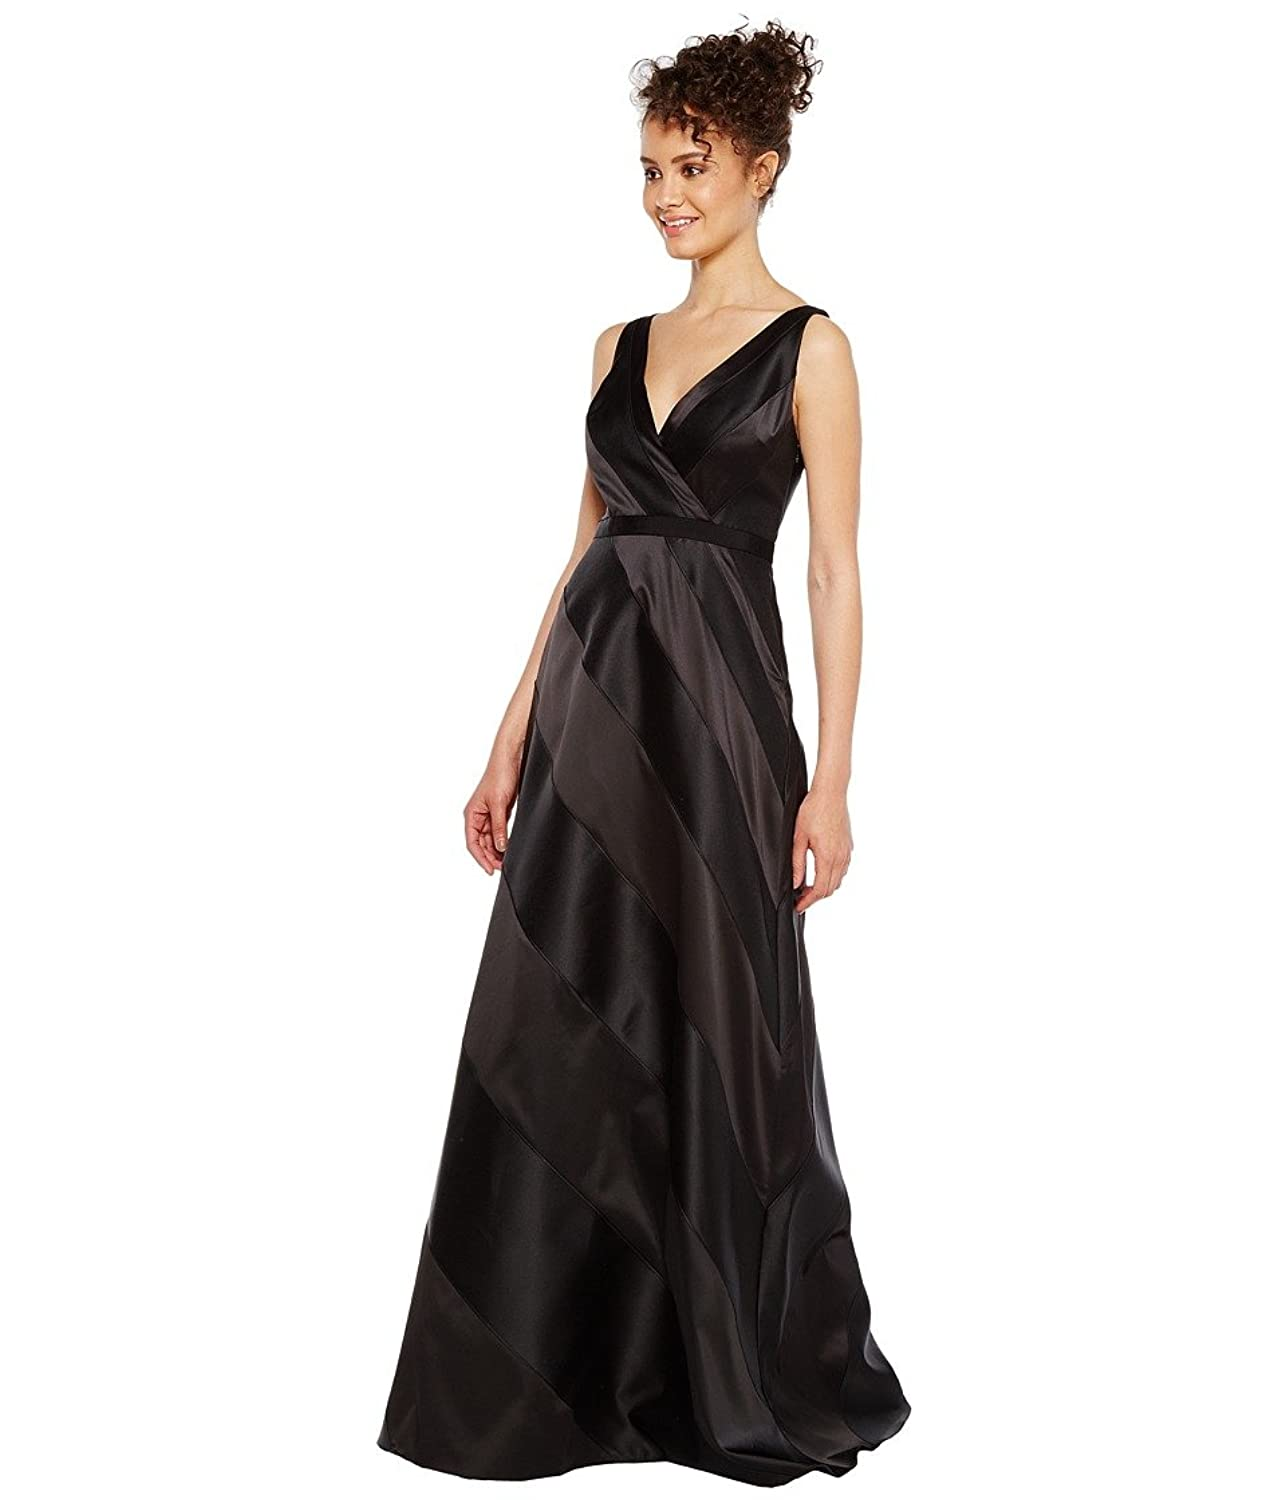 Adrianna Papell Women\'s Fabric Combo Ball Gown Black 14 at Amazon ...